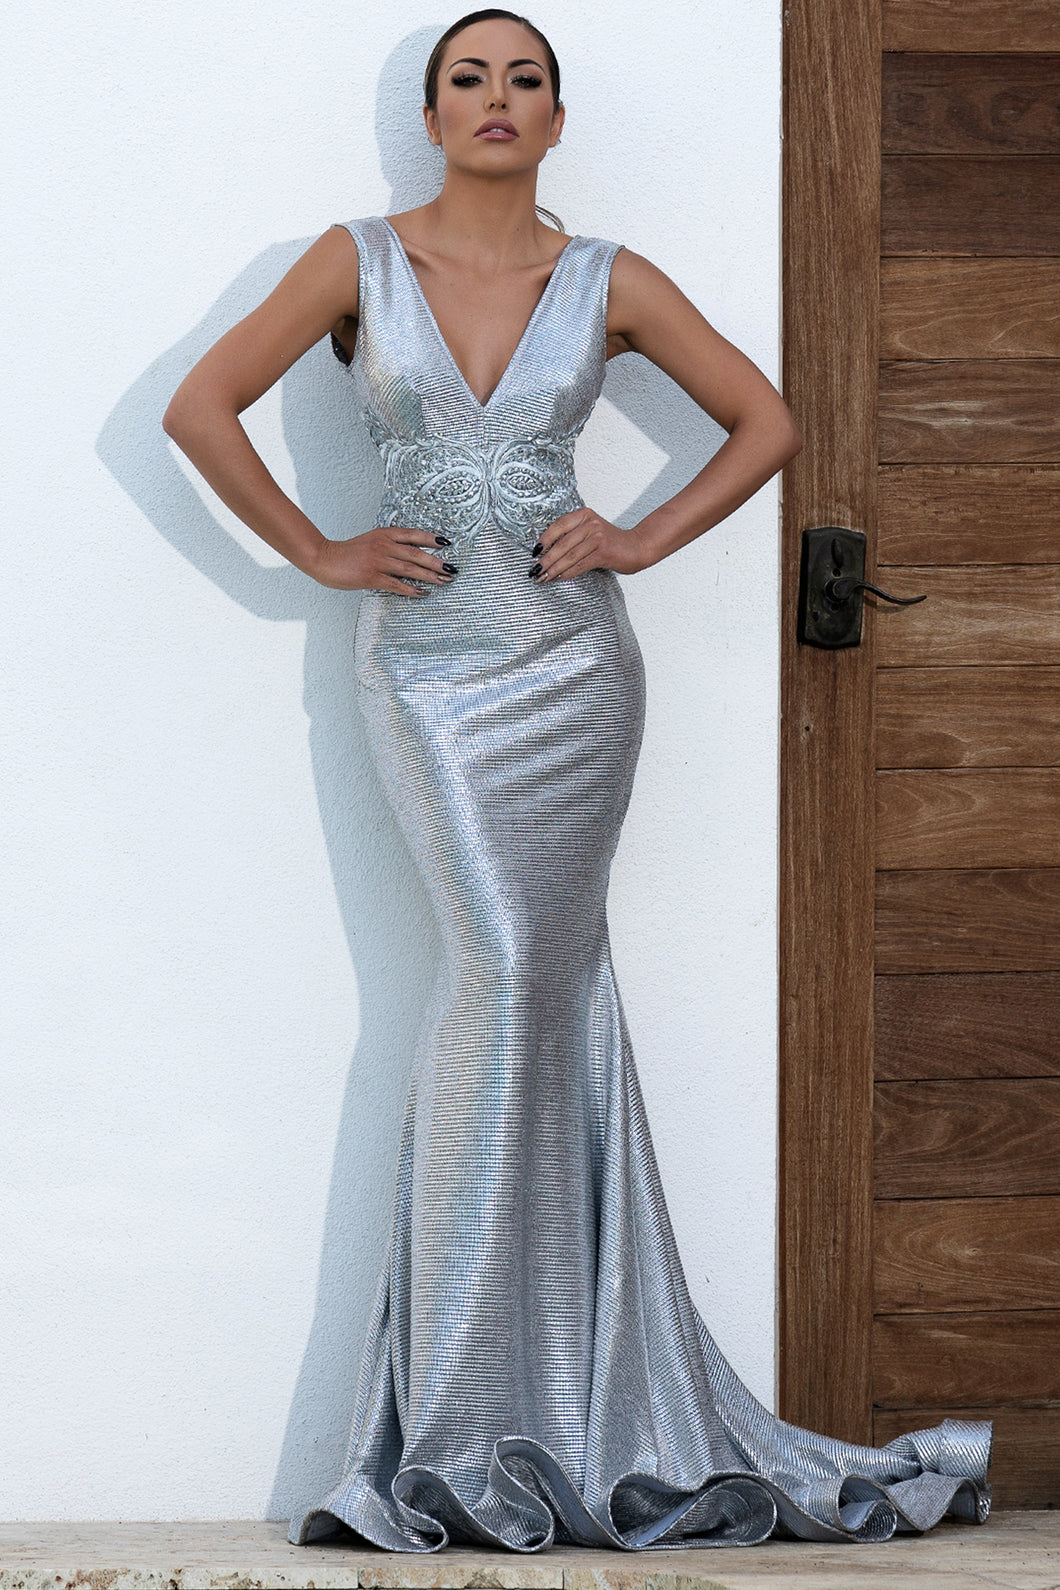 Valentina Metallic Silver Handpainted Long Dress. Gowns - BACCIO Couture